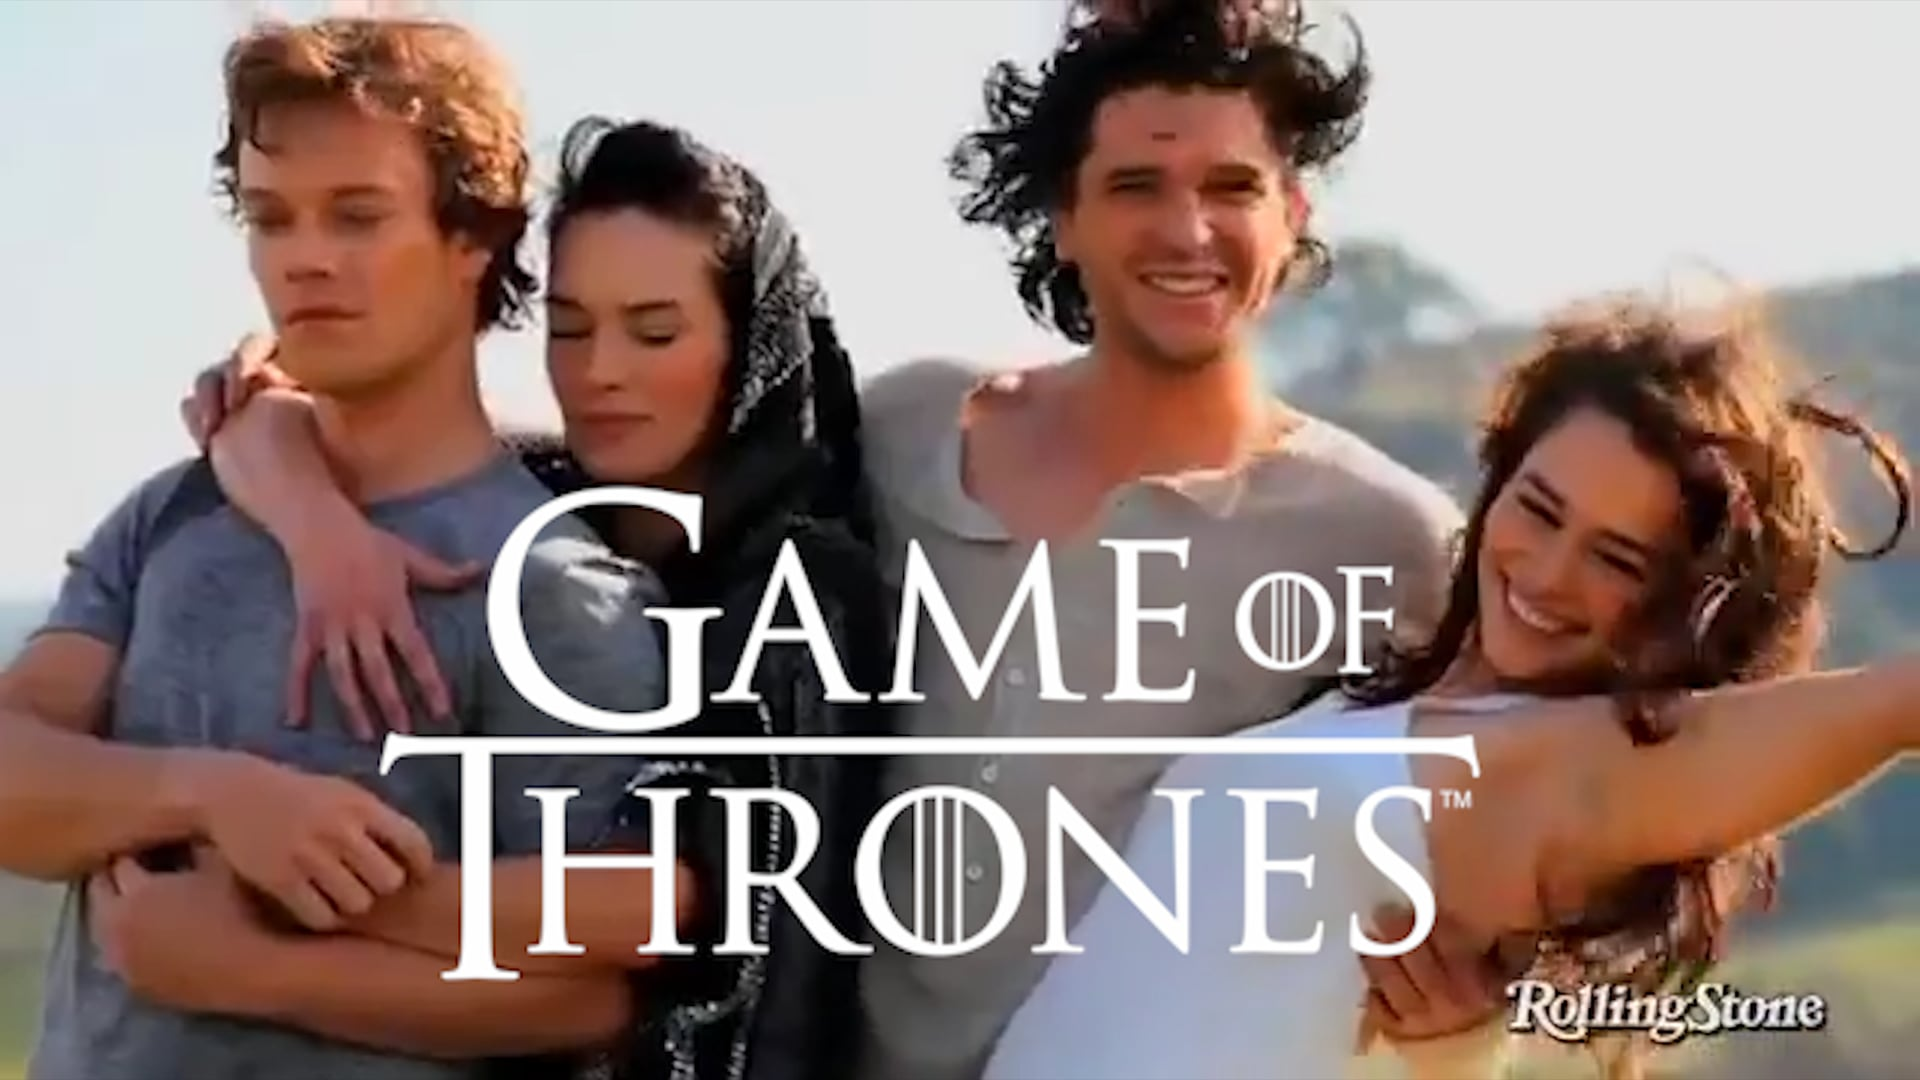 'Game of Thrones' Promo